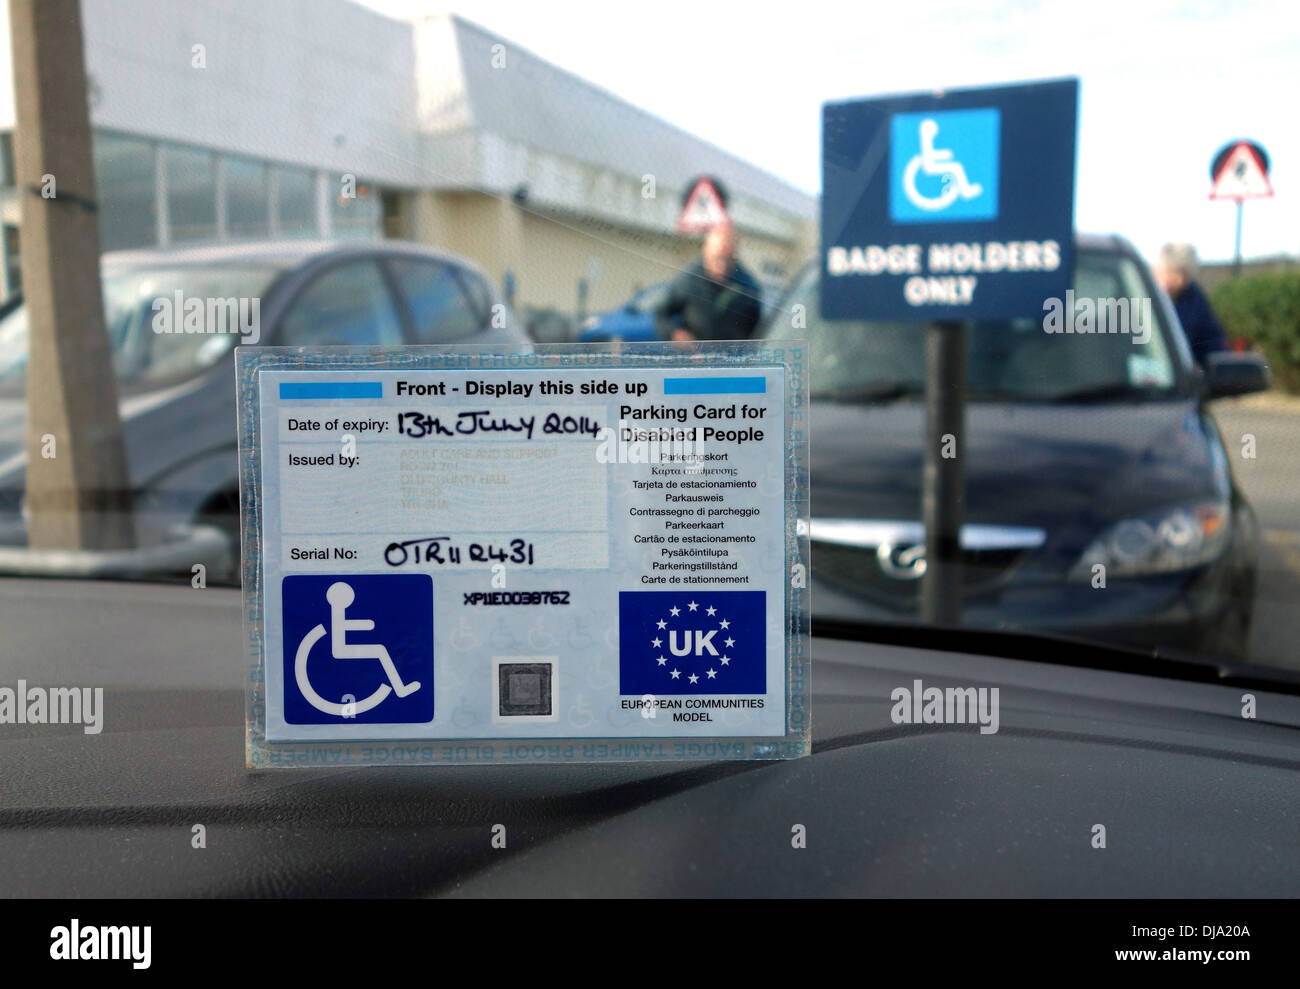 A Disabled Parking Permit Stock Photos & A Disabled Parking Permit ...